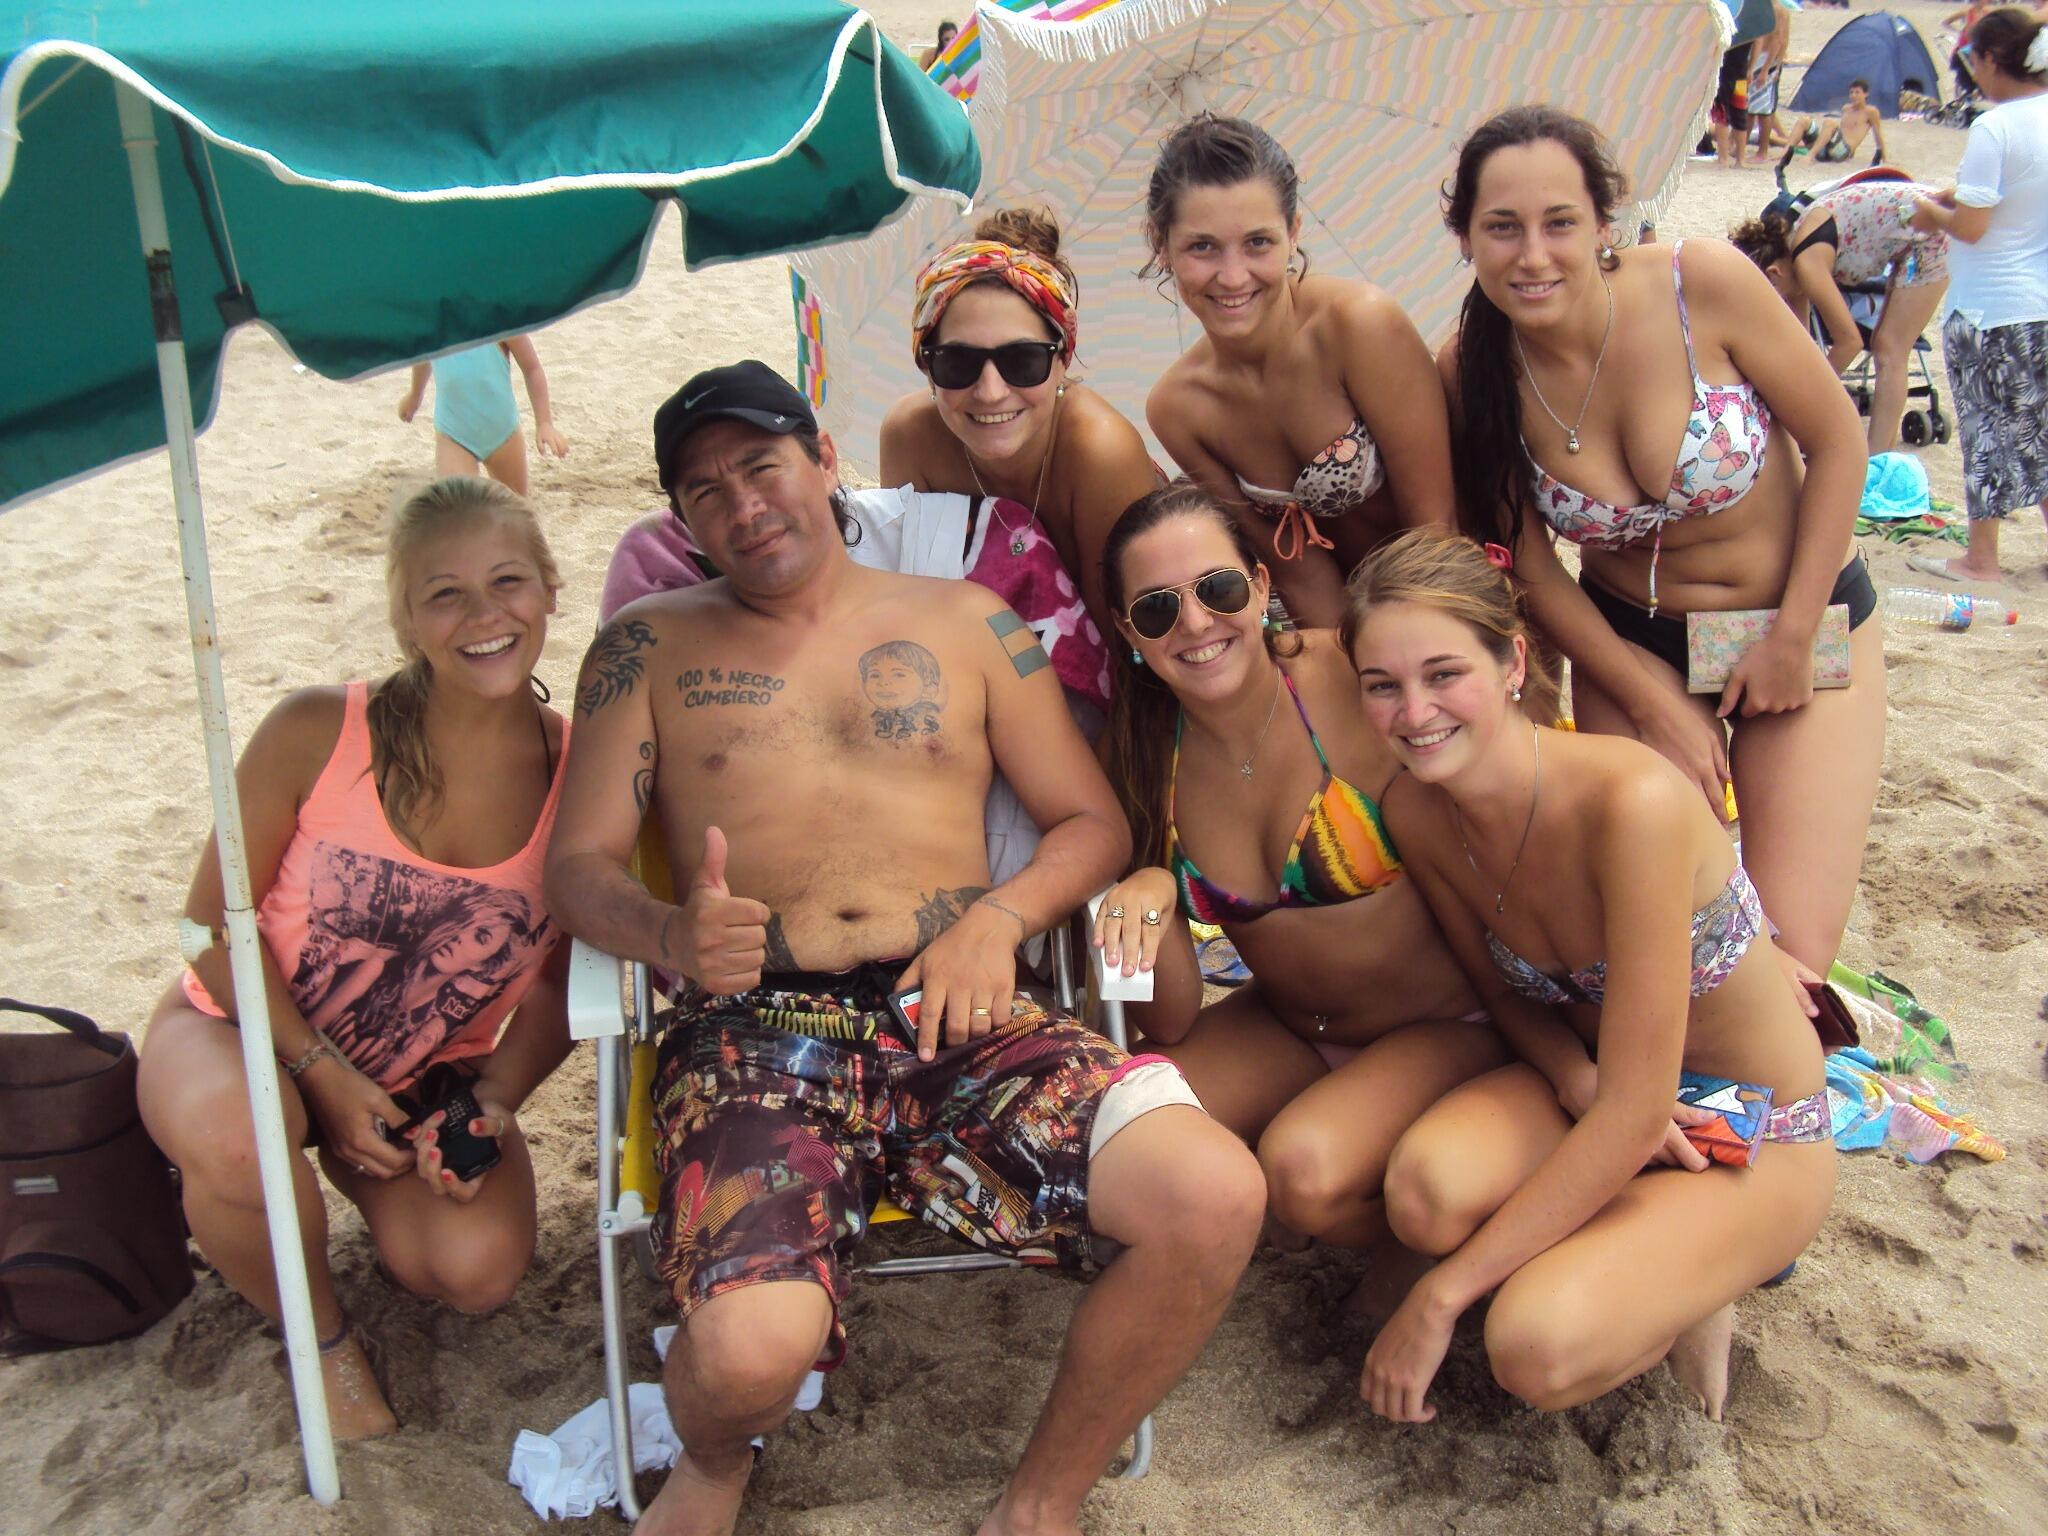 RT @analuz44: Gesell con @pablitolescano http://t.co/fG5Of7A1zf